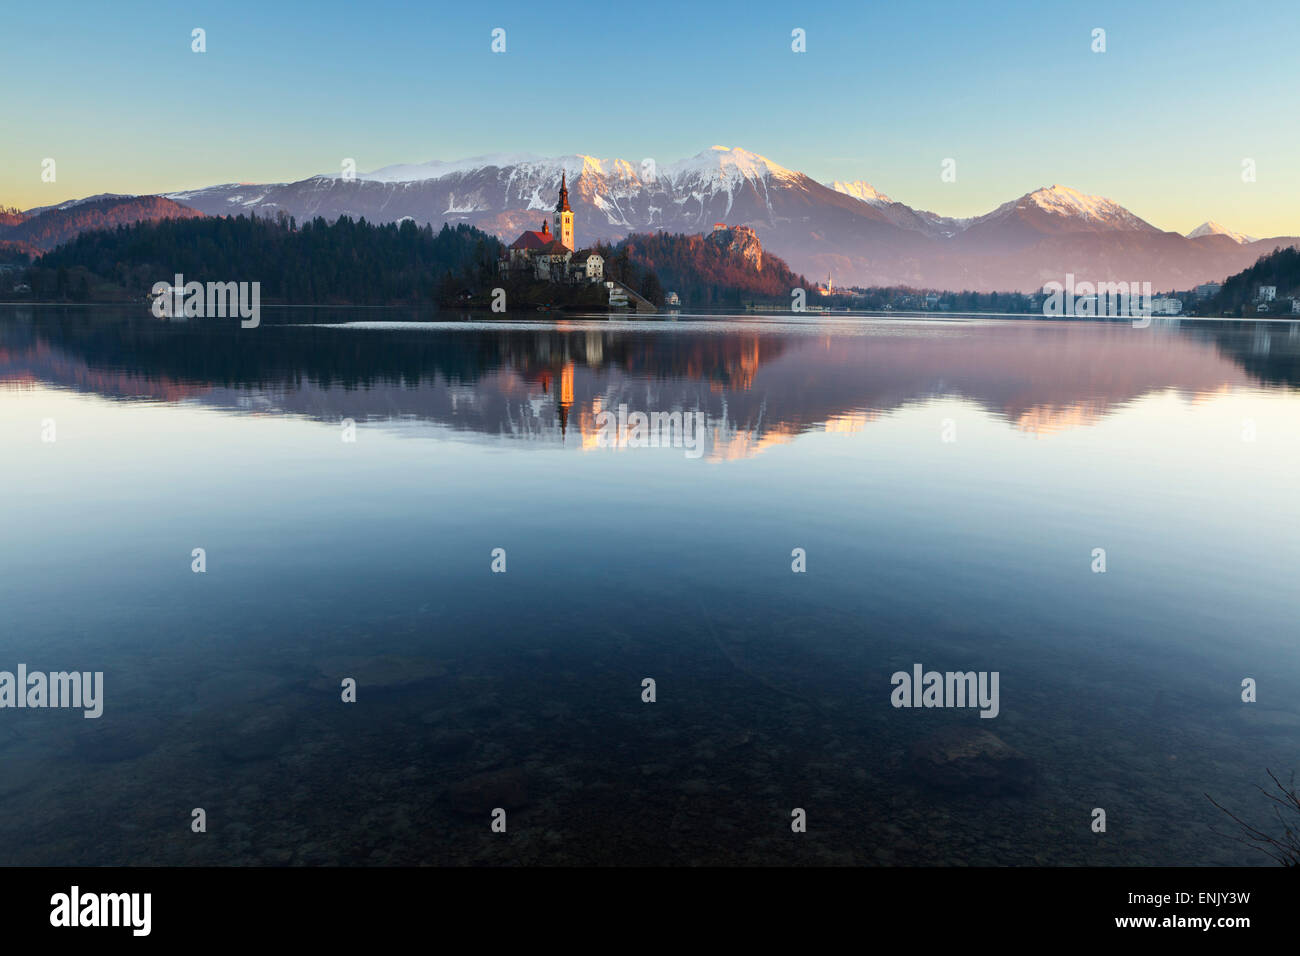 The Assumption of Mary Pilgrimage Church on Lake Bled and Bled Castle, Bled, Slovenia, Europe - Stock Image